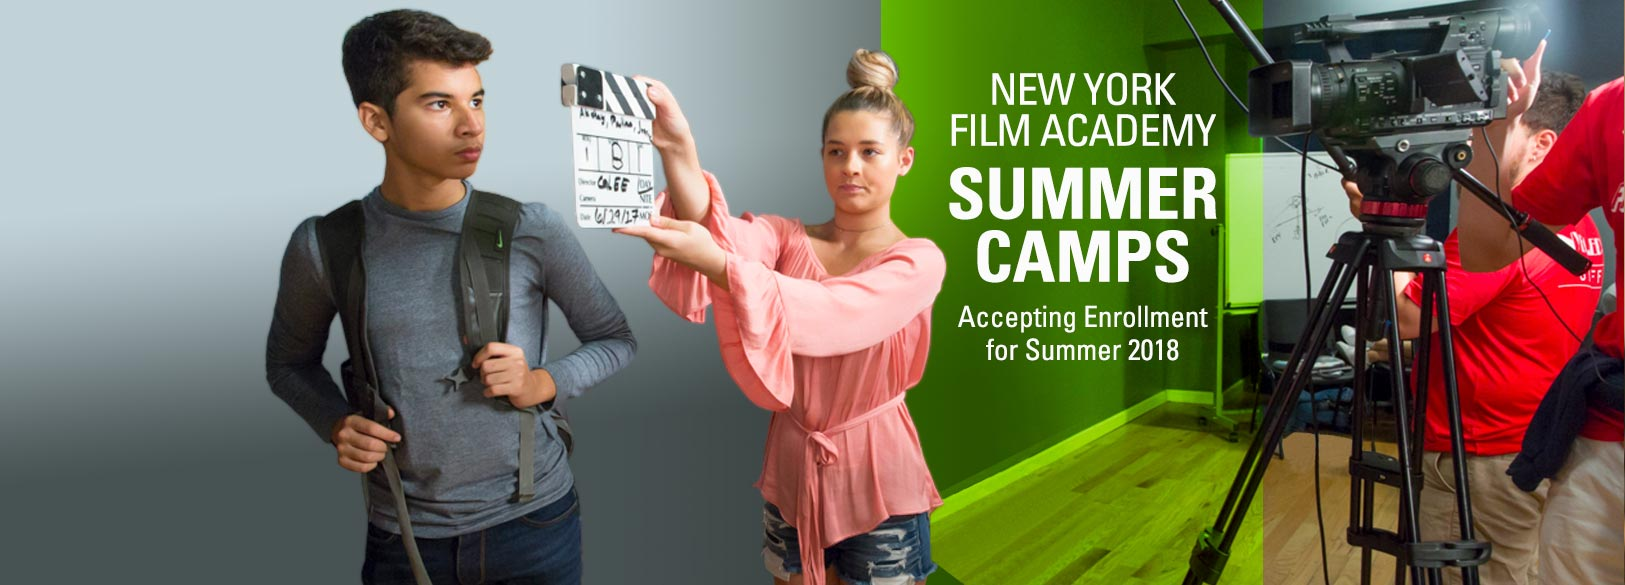 NYFA Summer Camps: Accepting Enrollment for Summer 2018